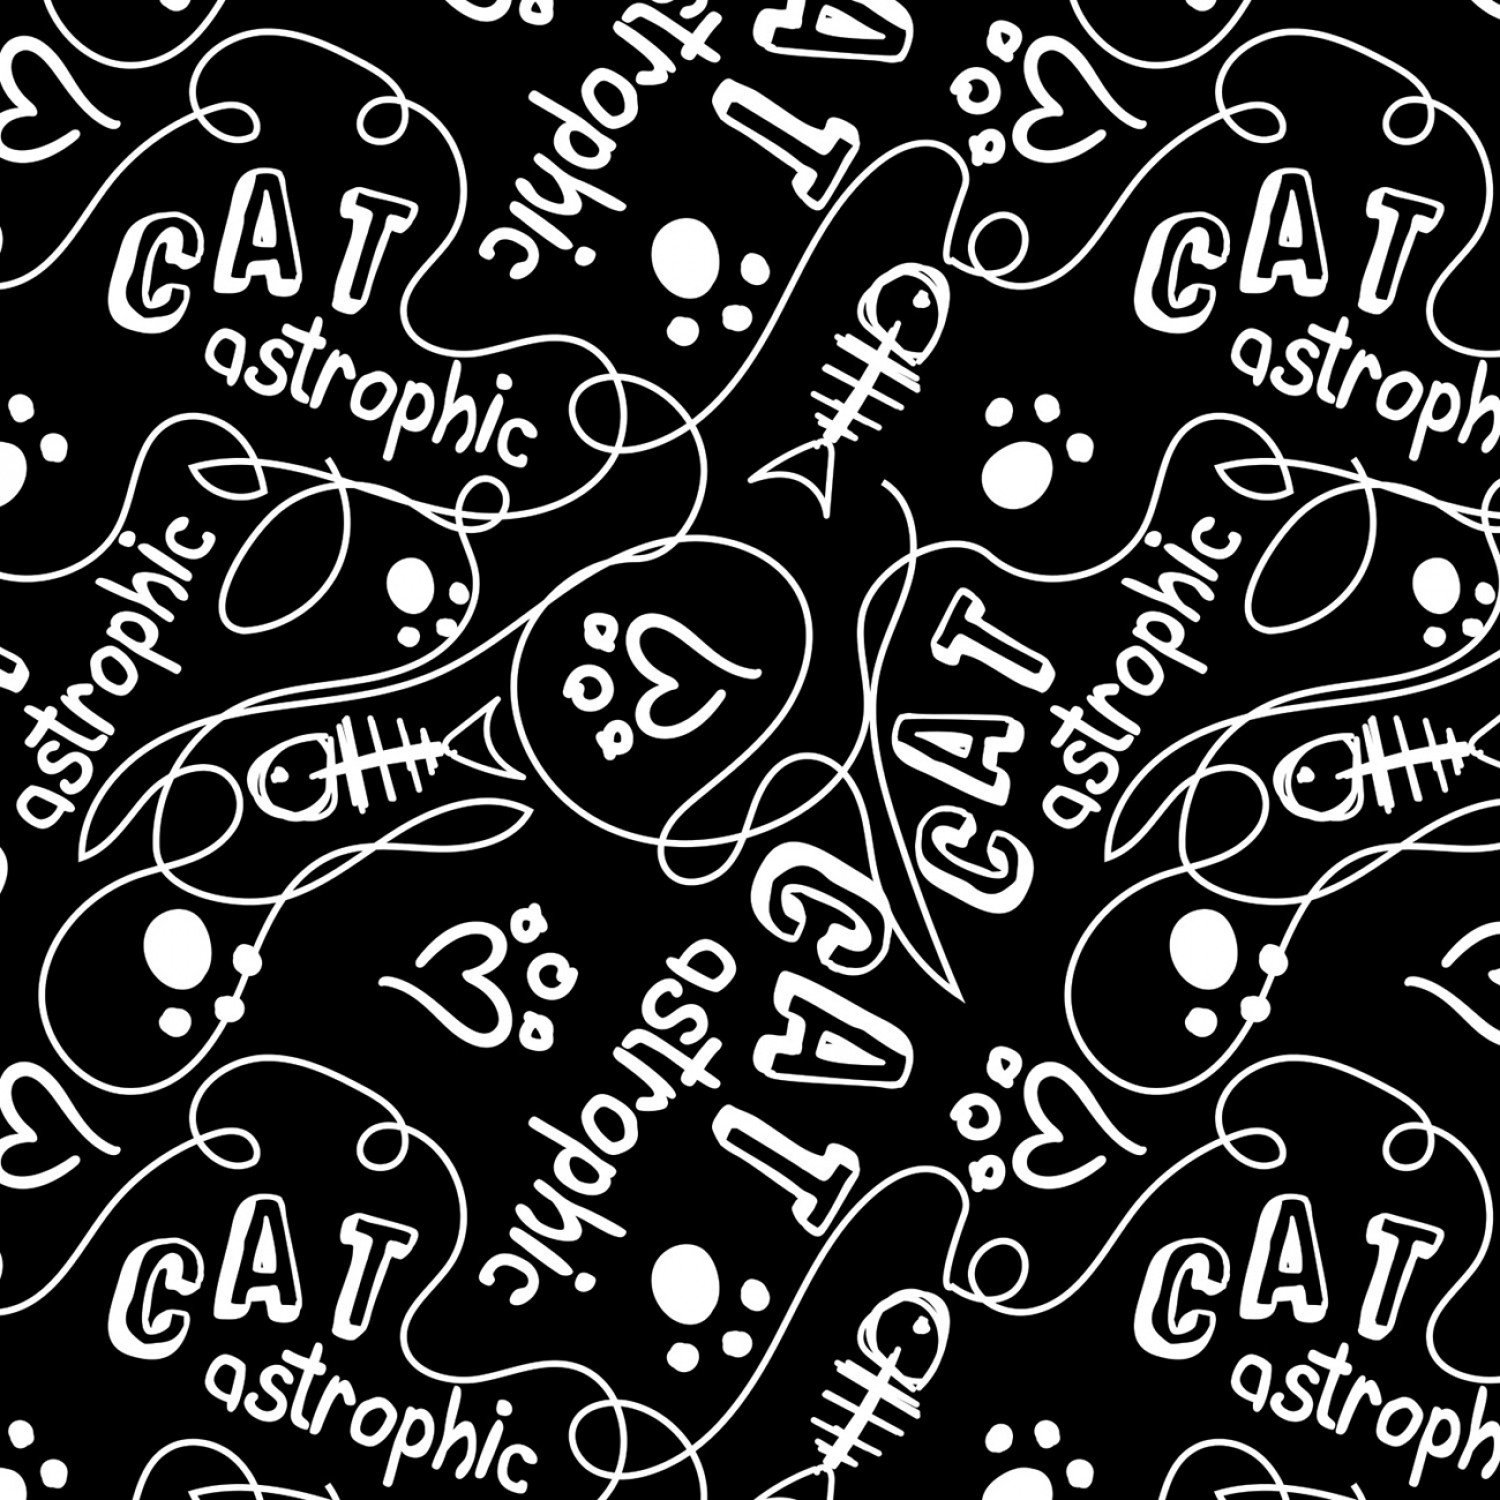 Camelot Fabrics Cats Rule by Rachael Hale 34180107 2 Black Catastrophic $10.20/yd